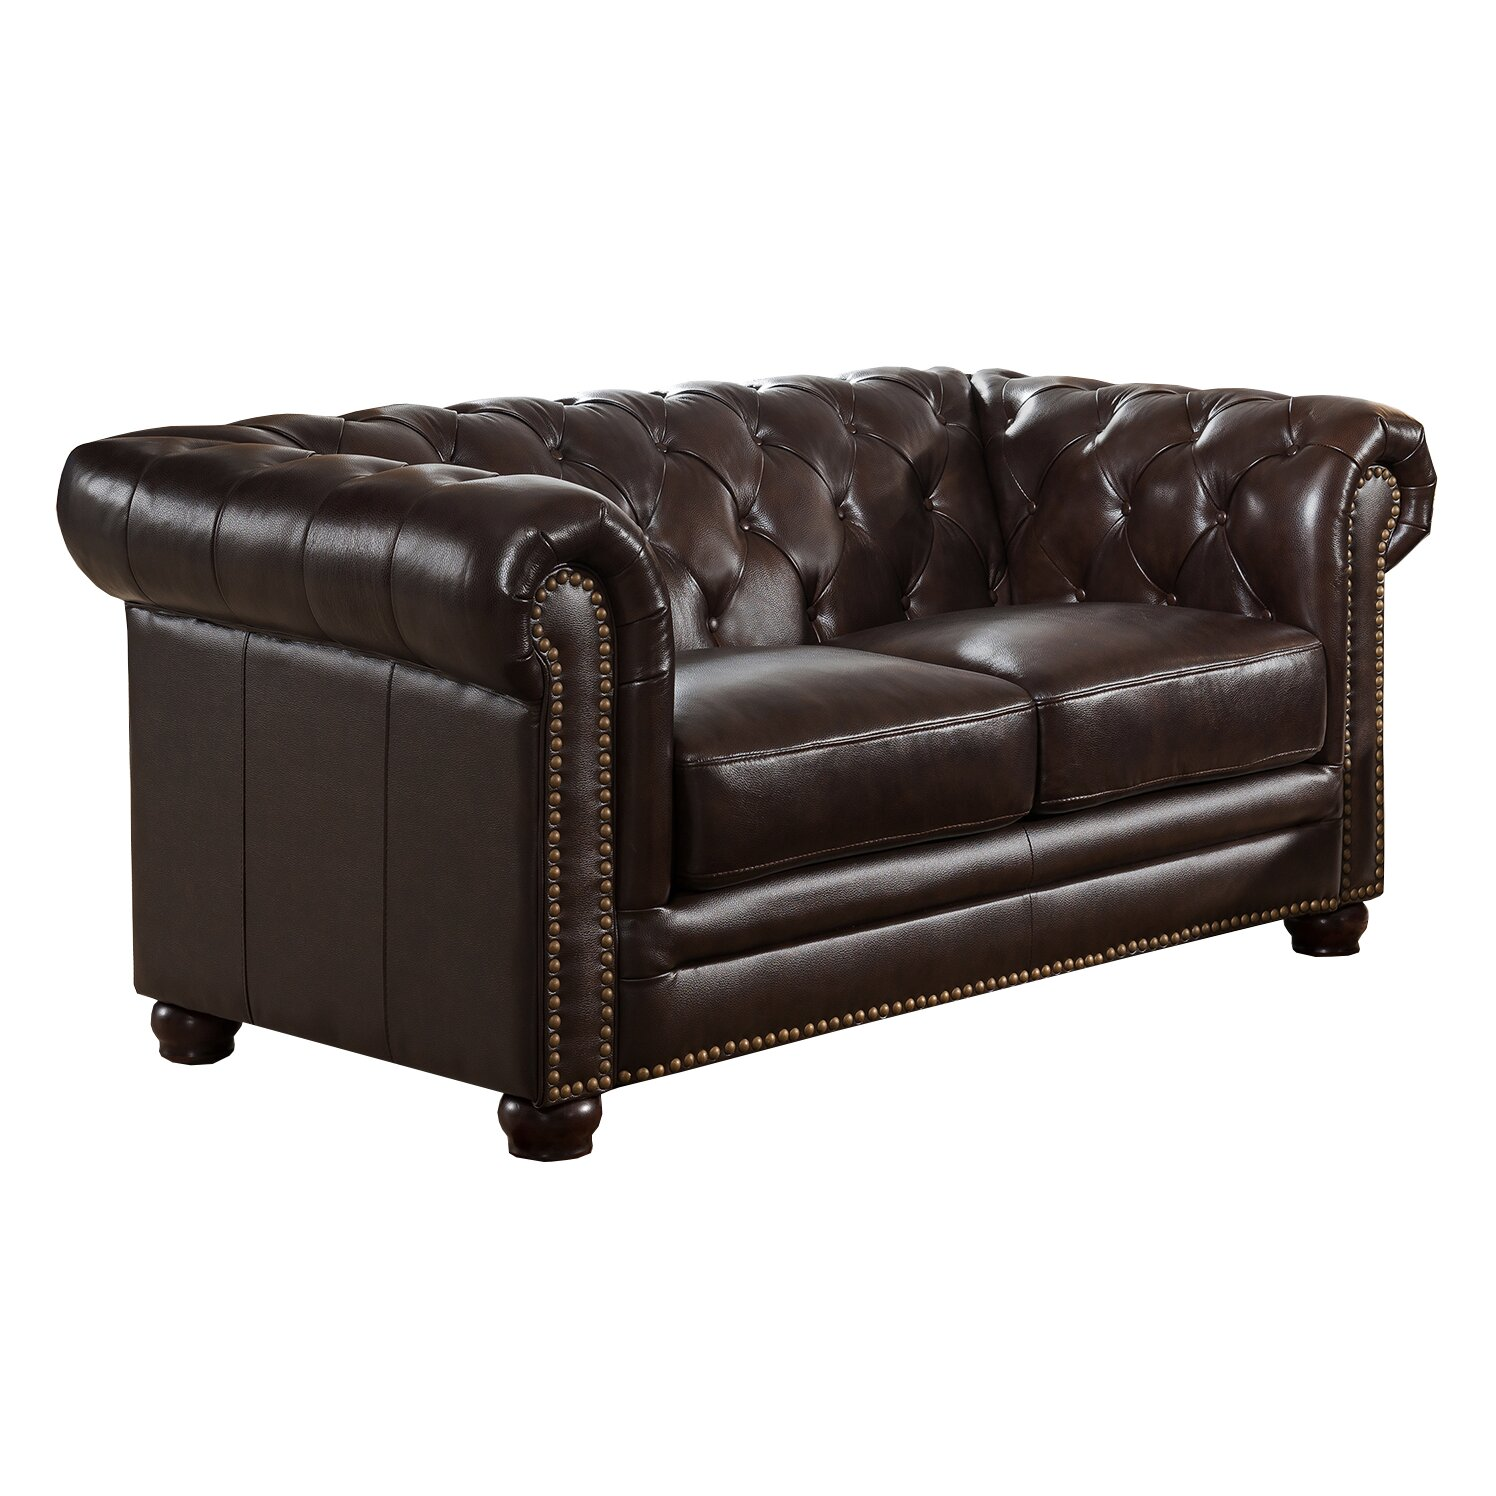 Amax Kensington Top Grain Leather Chesterfield Sofa